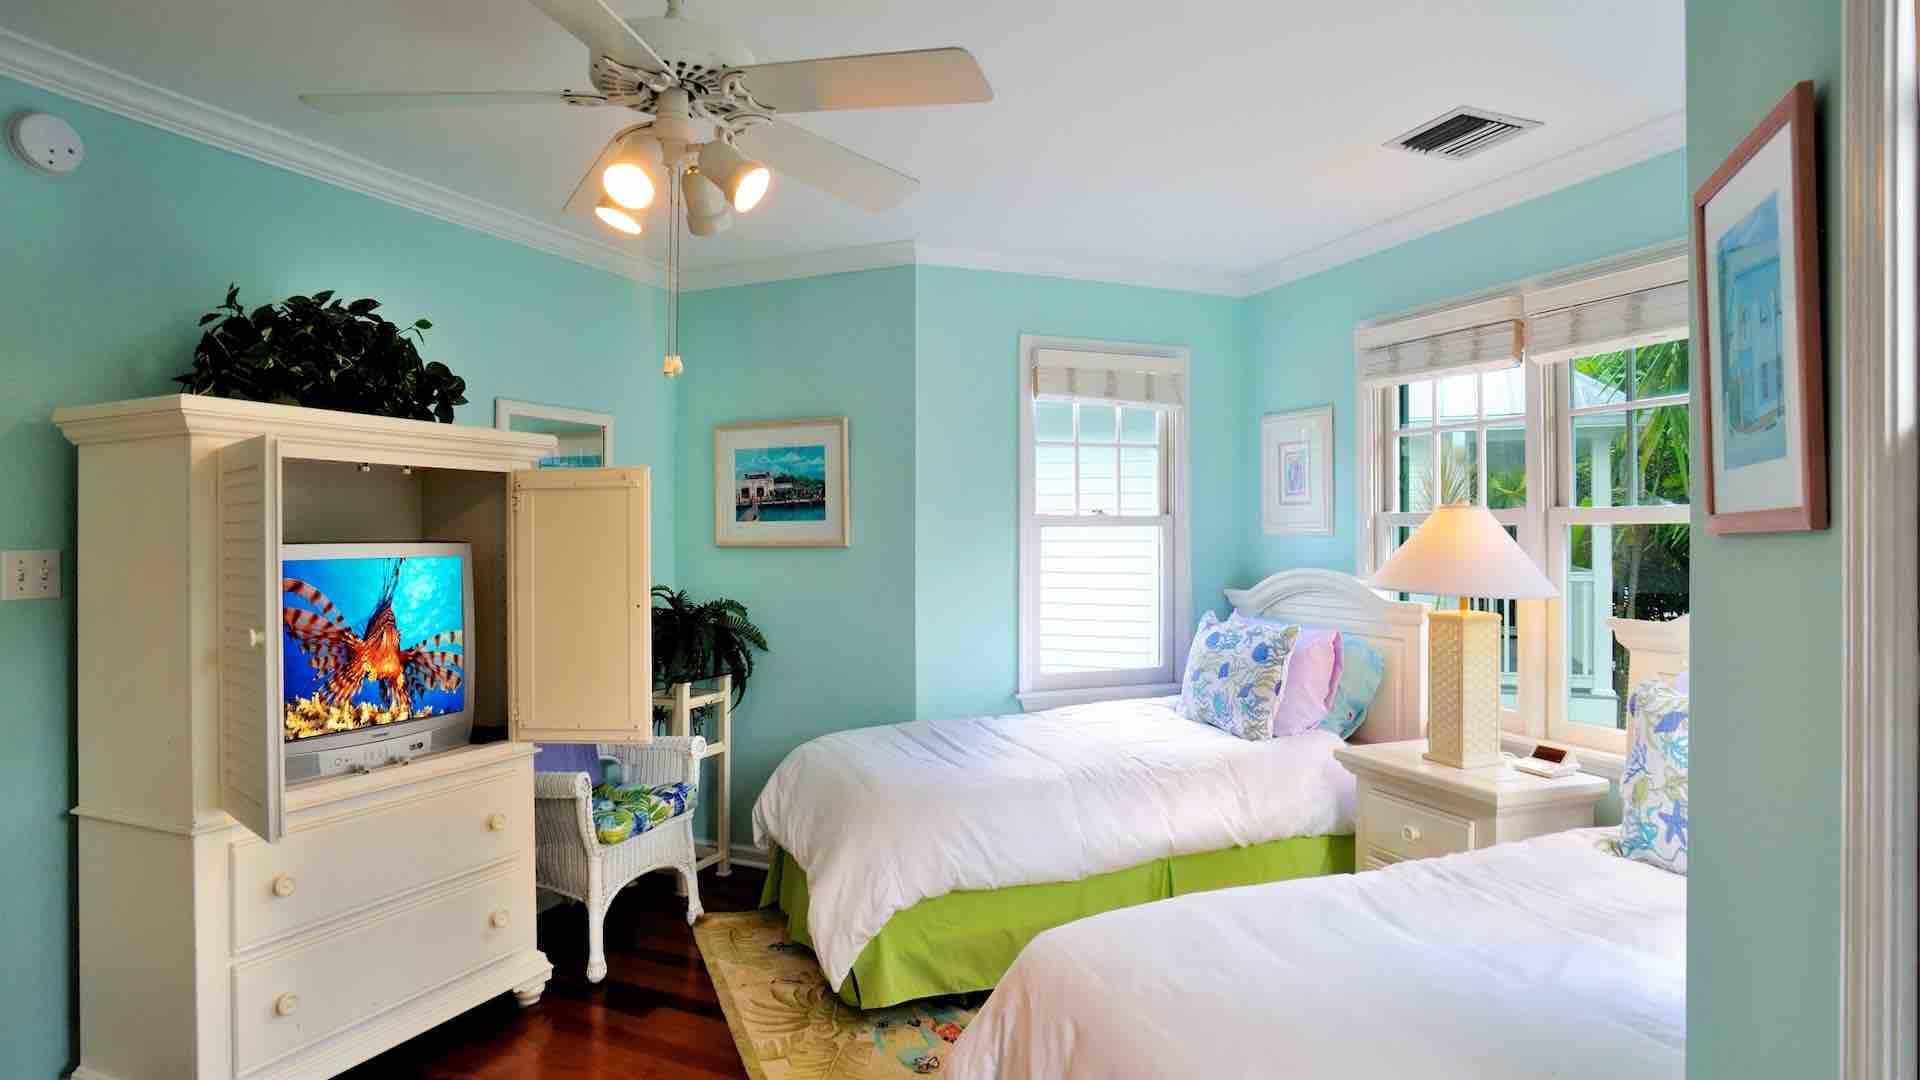 The second bedroom has a flat screen TV and an overhead fan...